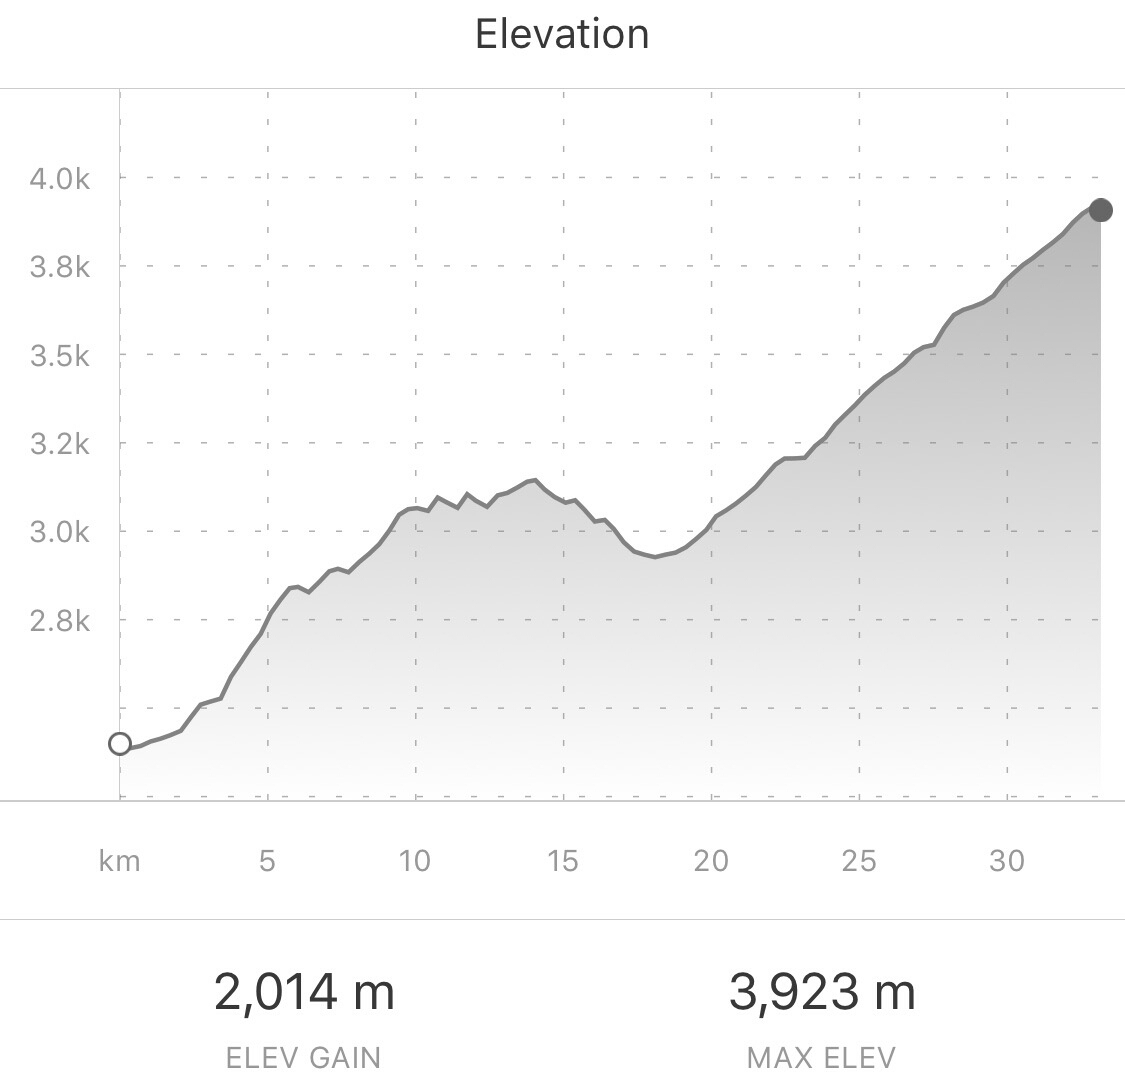 Our climb to get to Los Nevados National Park. From Strava.